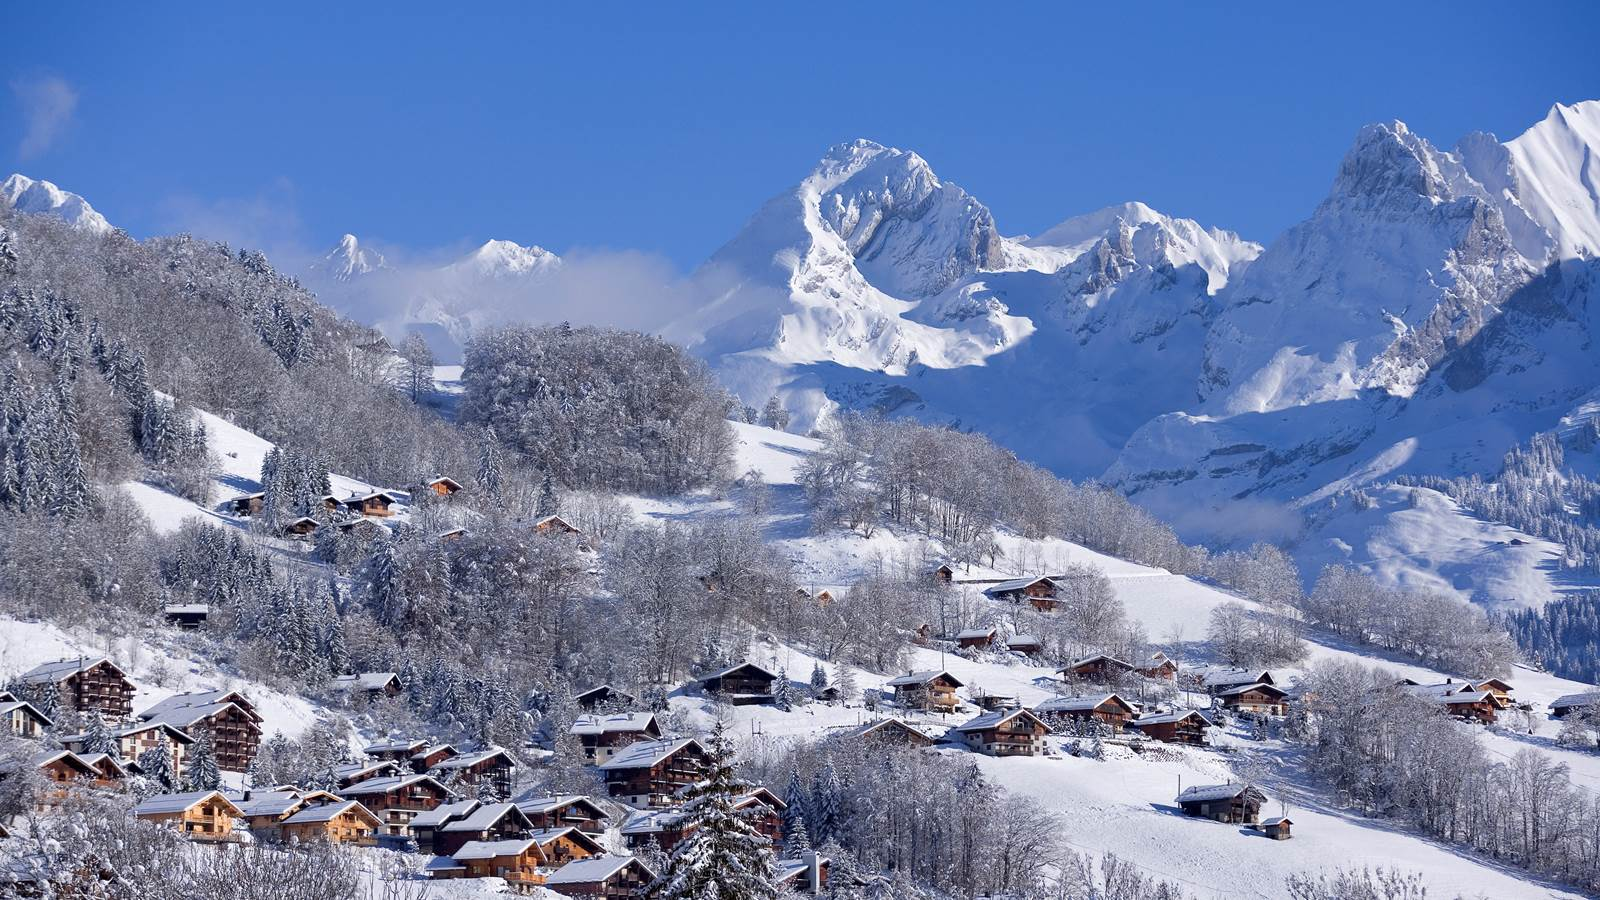 Le Grand Bornand, charmant village-station du Massif des Aravis